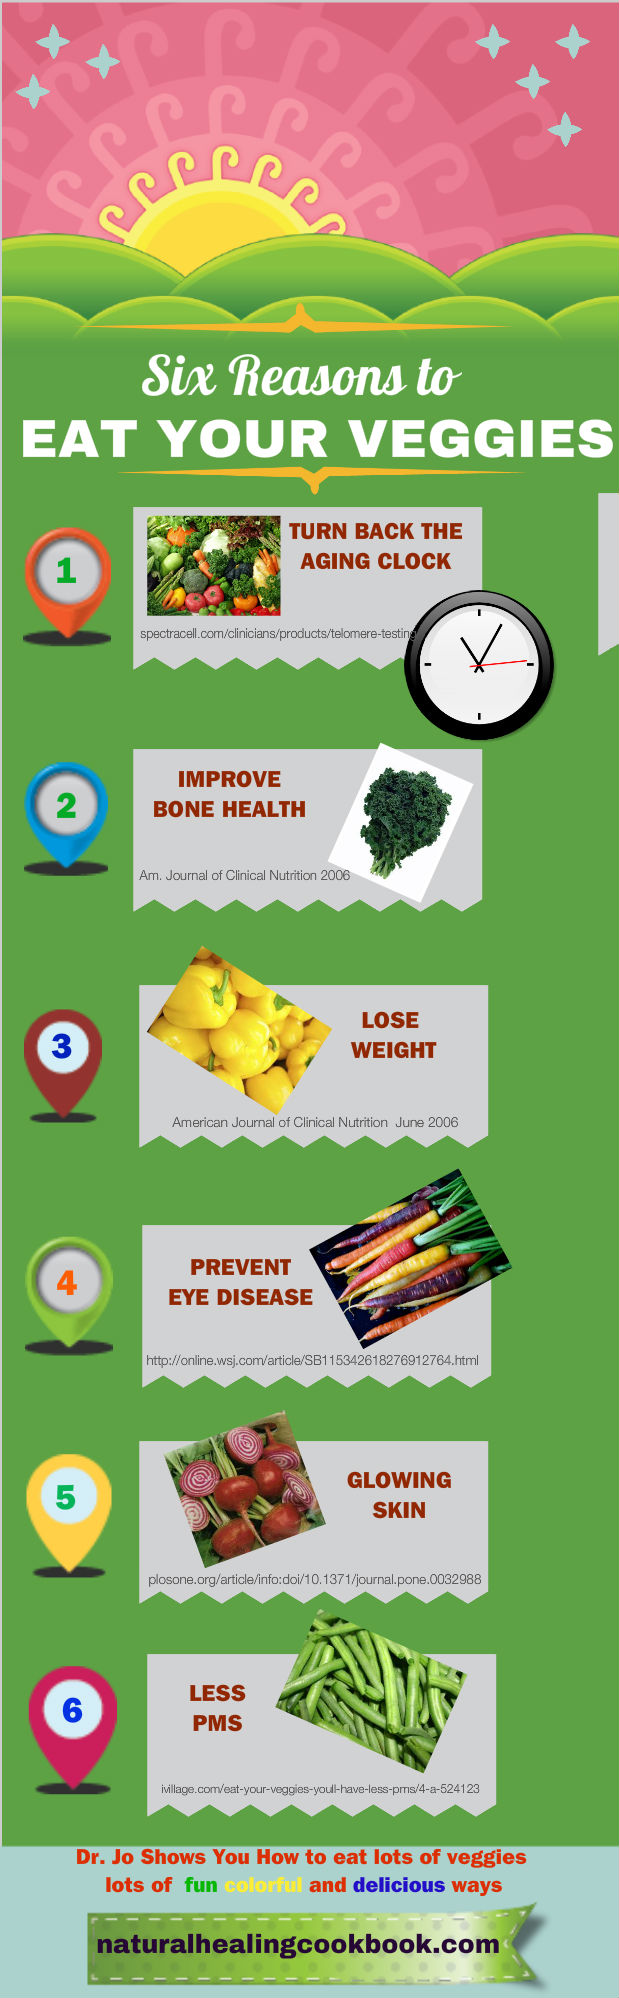 6 Reasons to Eat Your Veggies